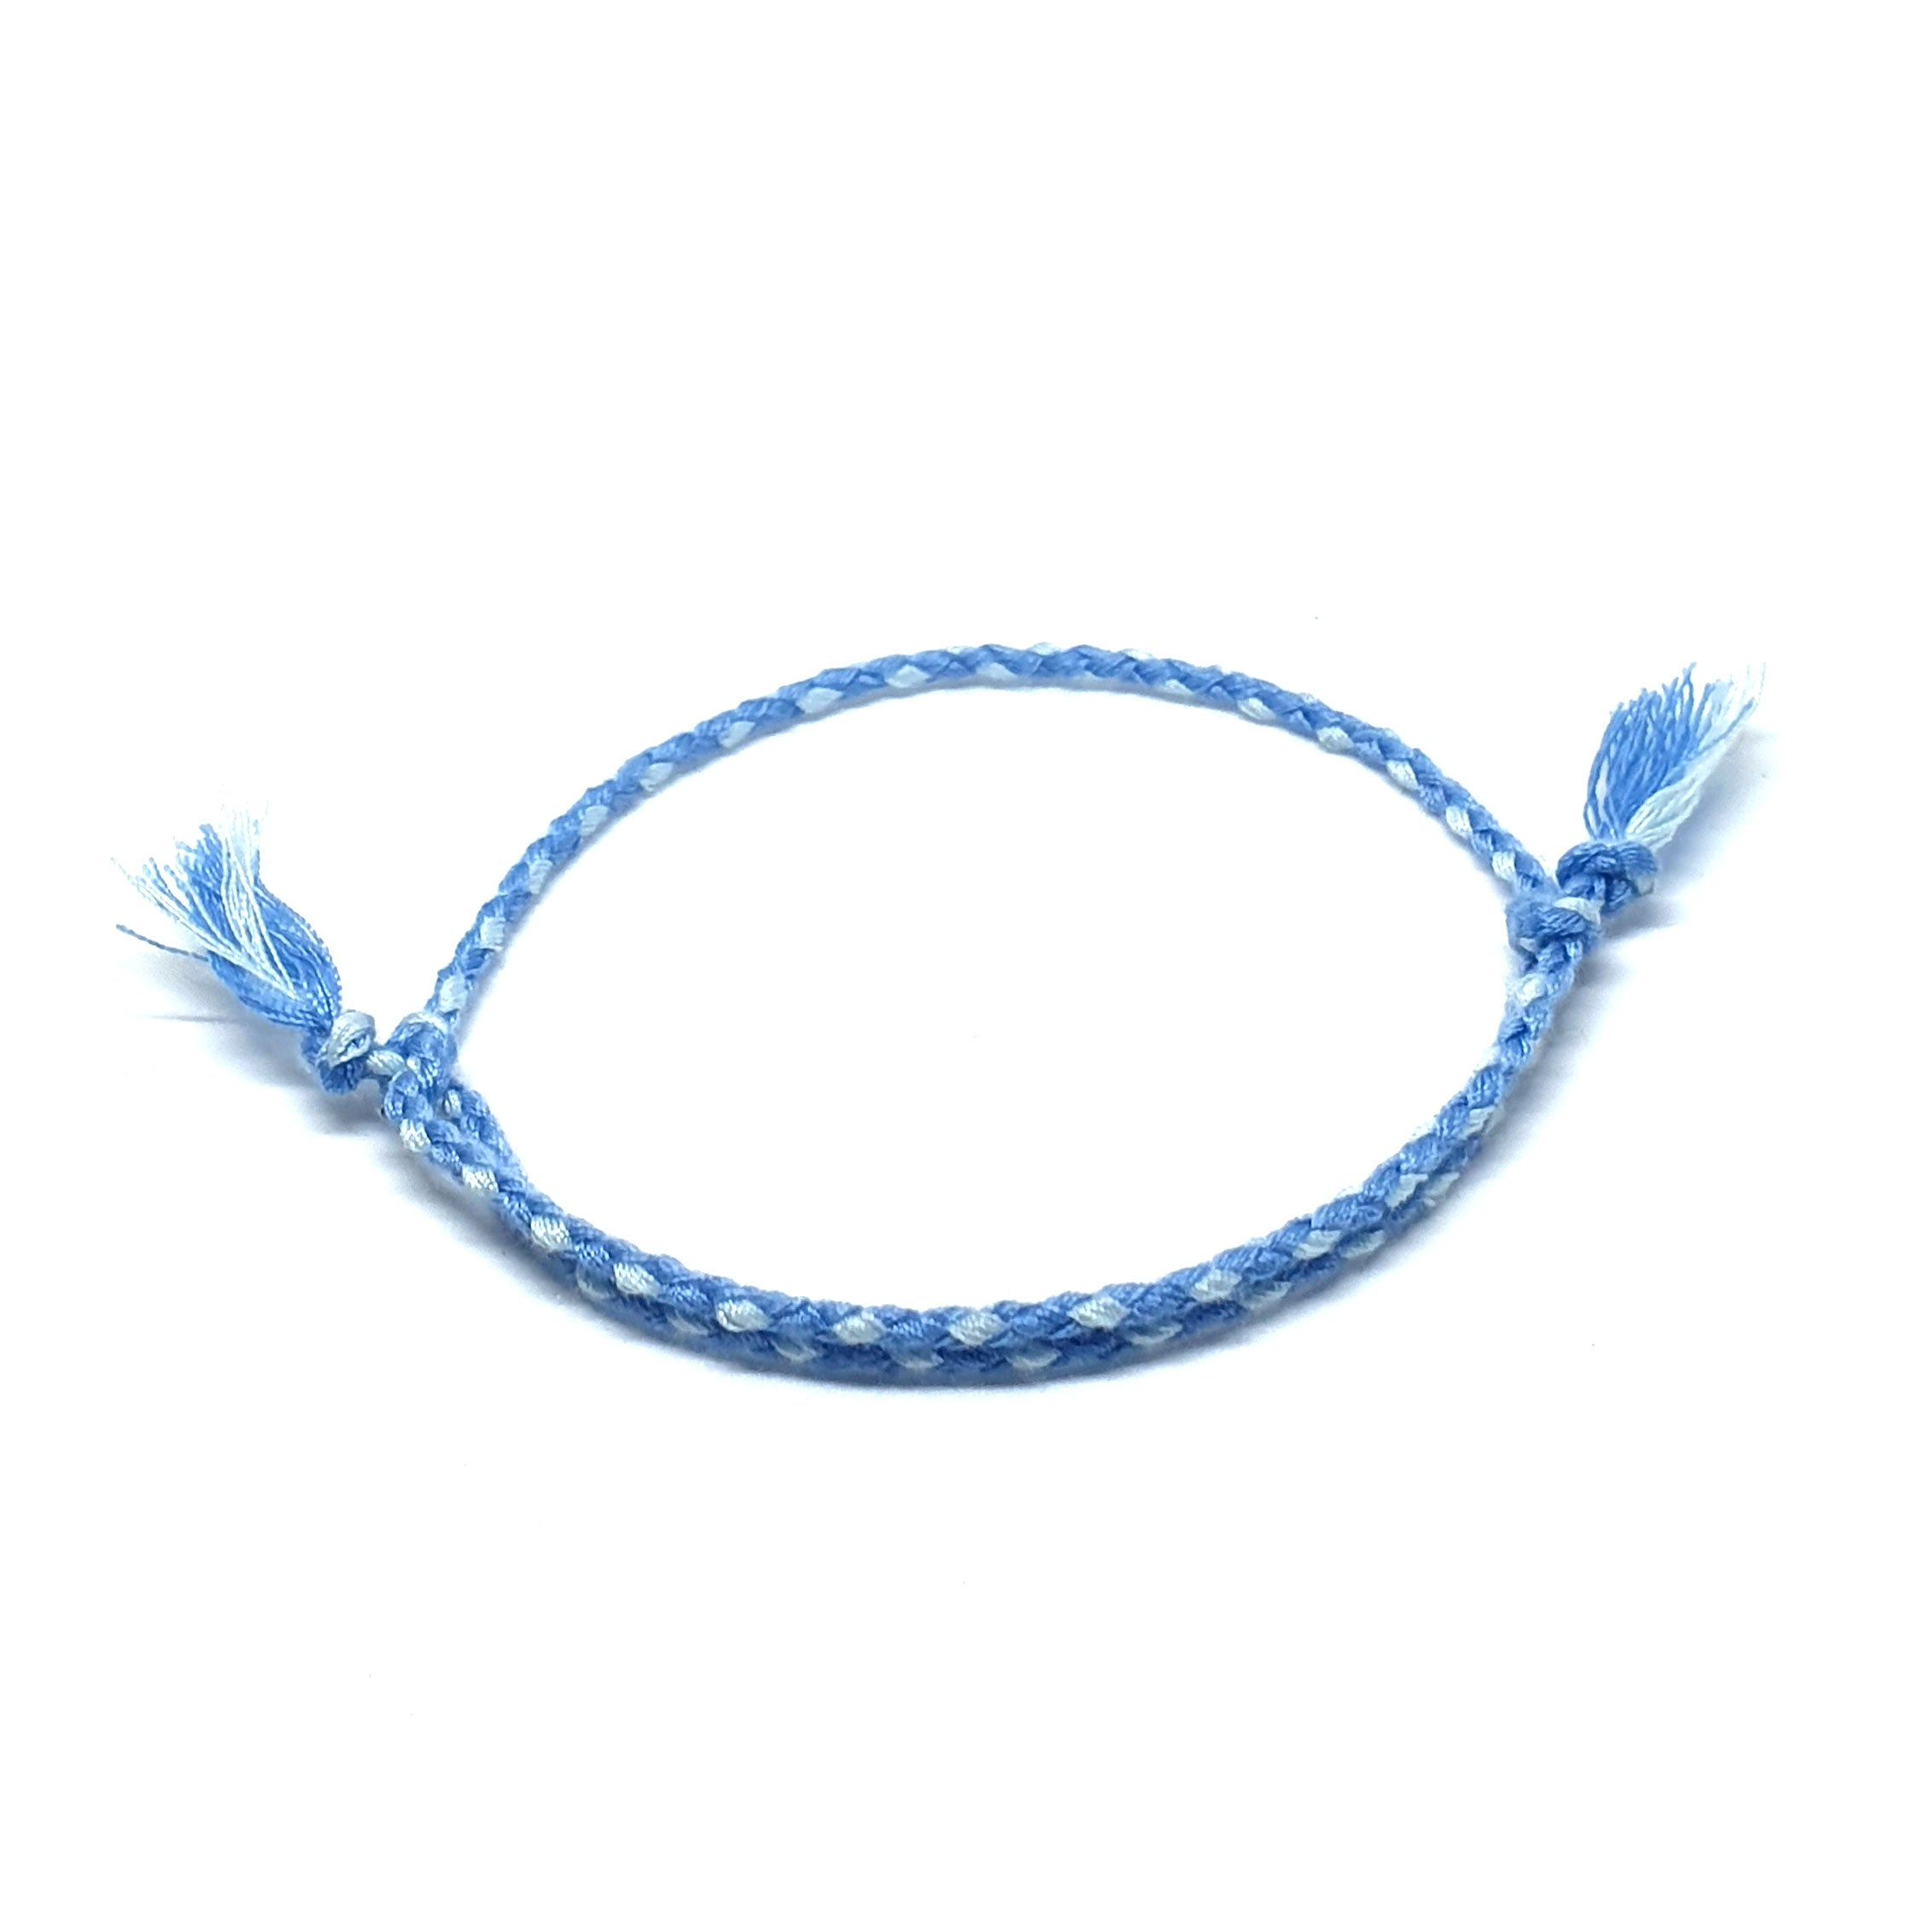 Light blue braided cotton bracelet